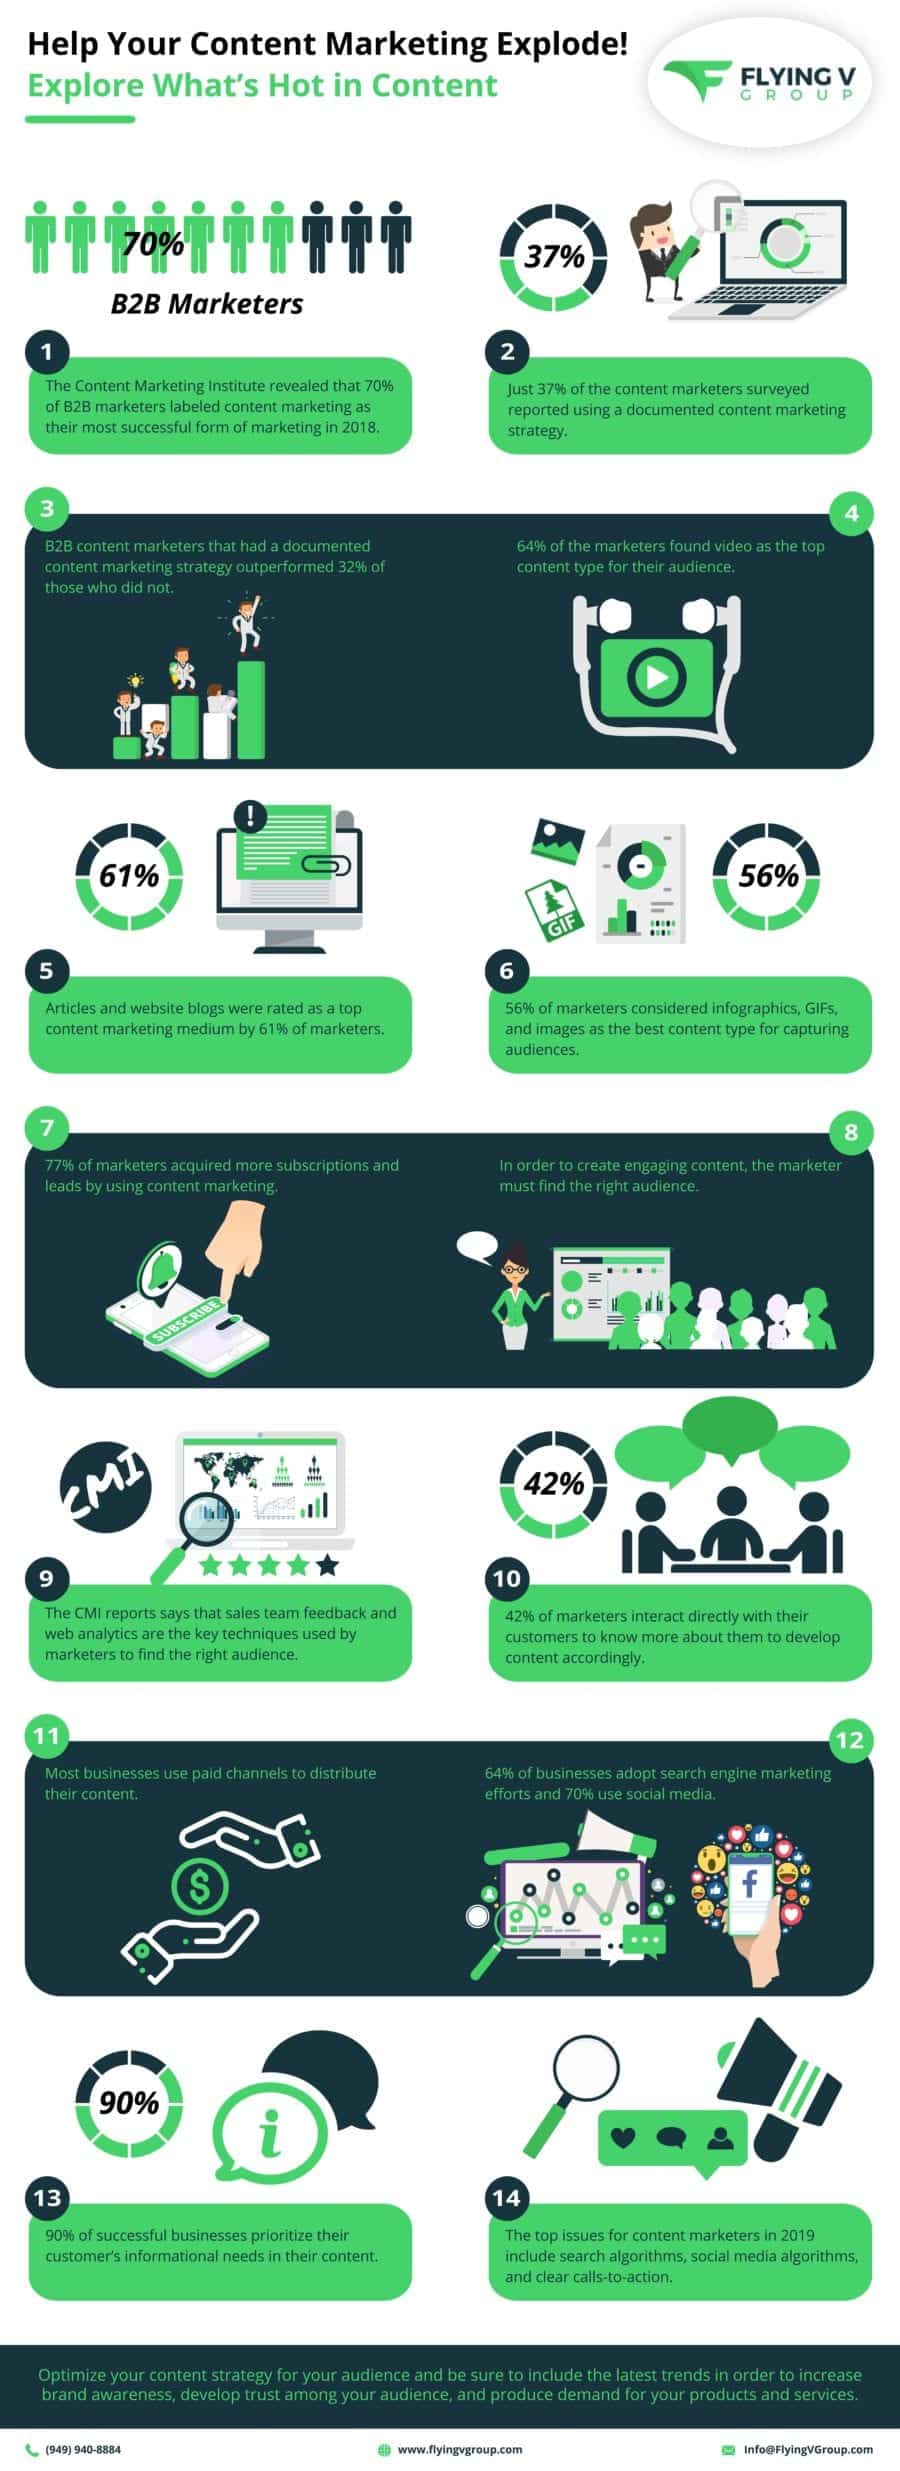 help your content marketing explode infographic